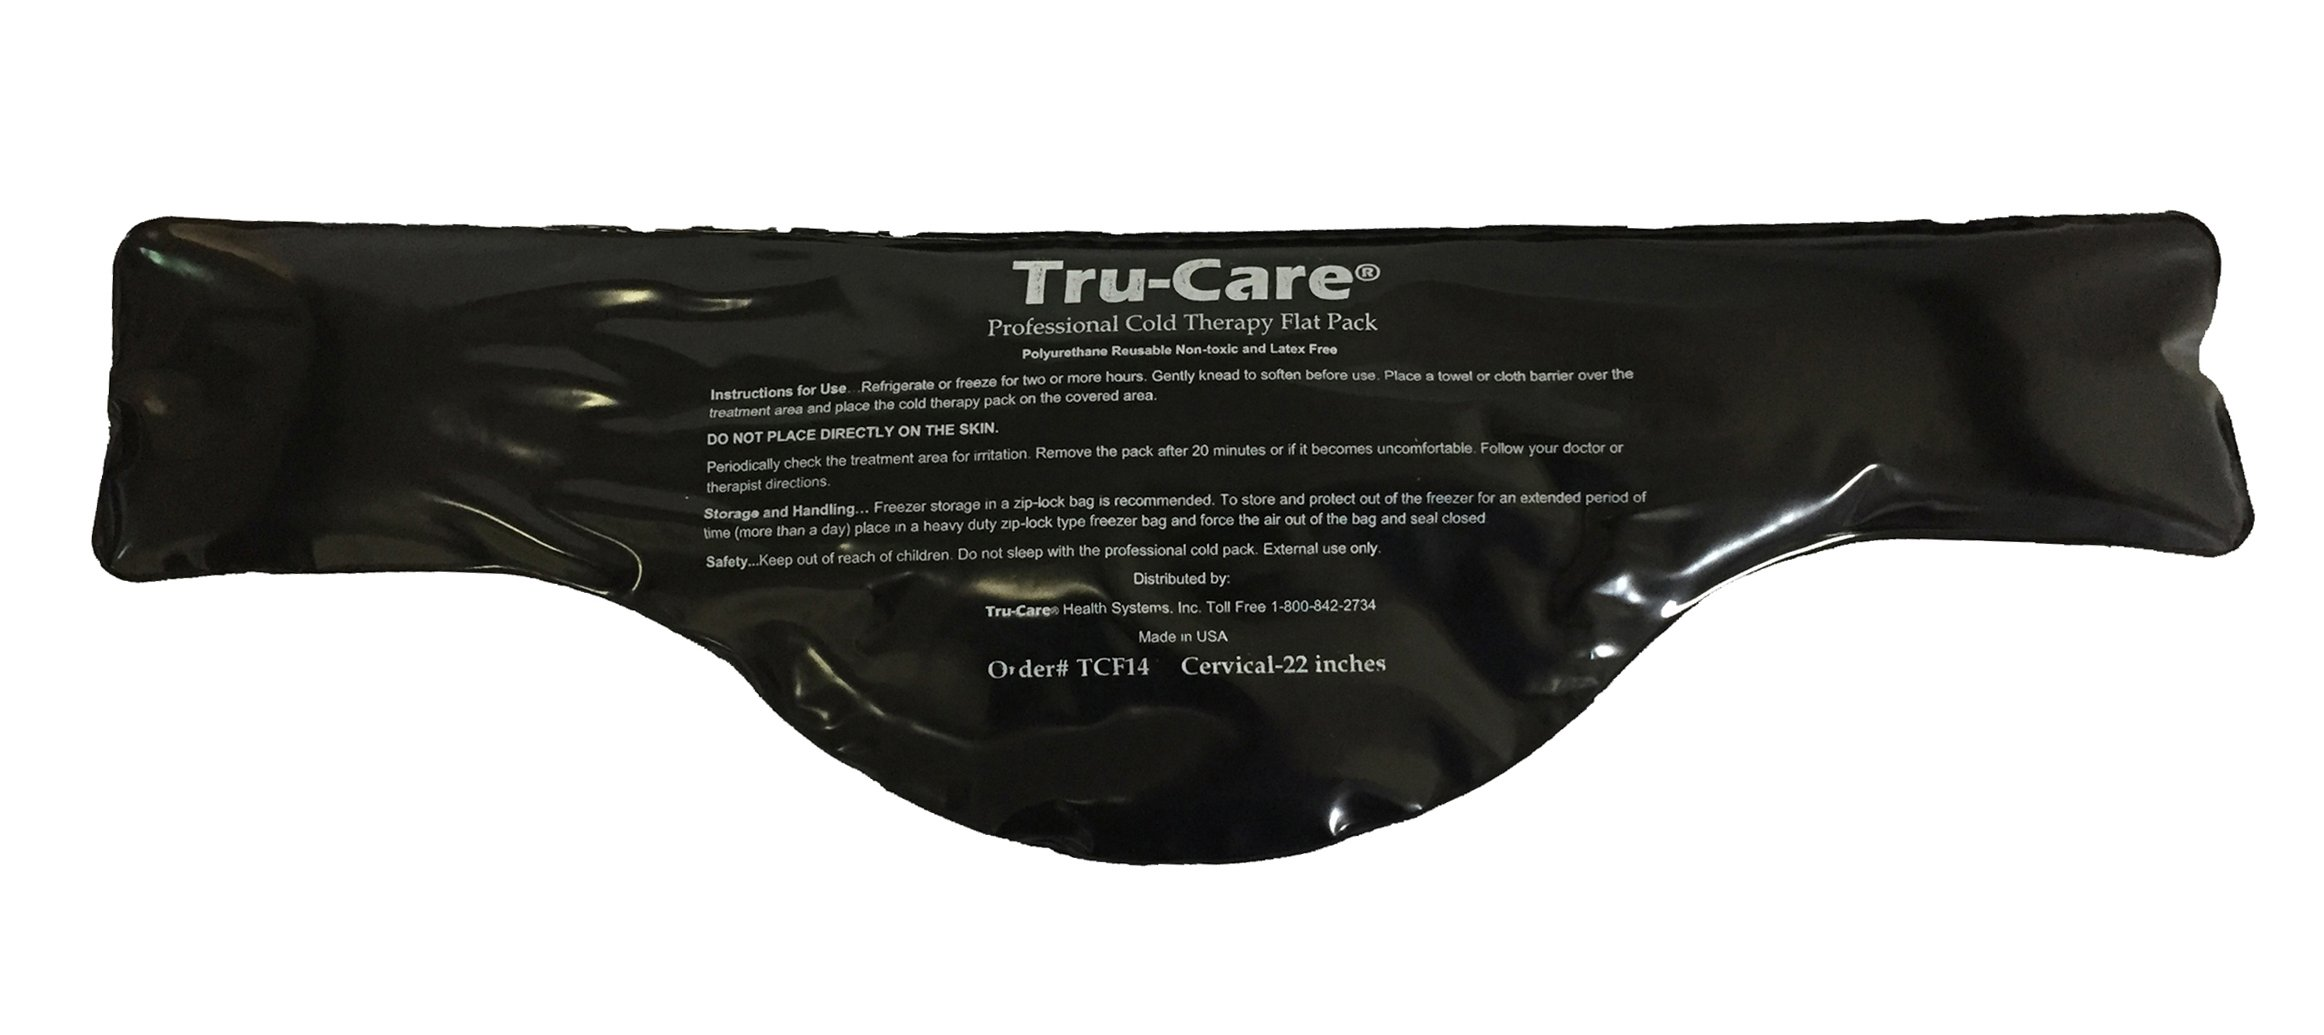 Tru-Care Ice Pack for Injuries & Pain Relief for Neck Shoulder or Back are Latex Free